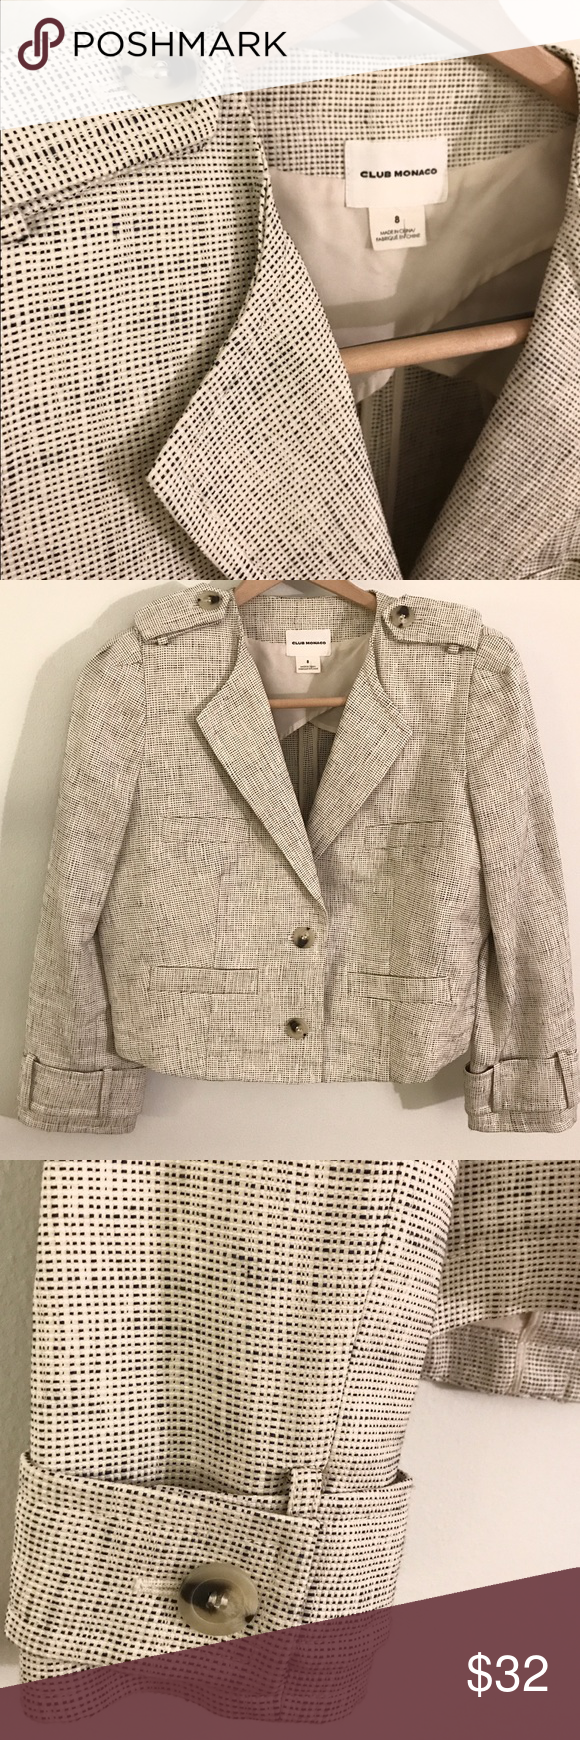 Club Monaco Woven Blazer Very cute, mid-weight Club Monaco blazer in a woven cream and very dark navy fabric.  Horn-look buttons at the front and at cuffs.  Very good condition - one tiny (2mm) stain on a lapel, which is only noticeable upon very close inspection.  Shell: 55% cotton, 20% viscose, 15% nylon, 10% linen; lining 100% polyester. Club Monaco Jackets & Coats Blazers